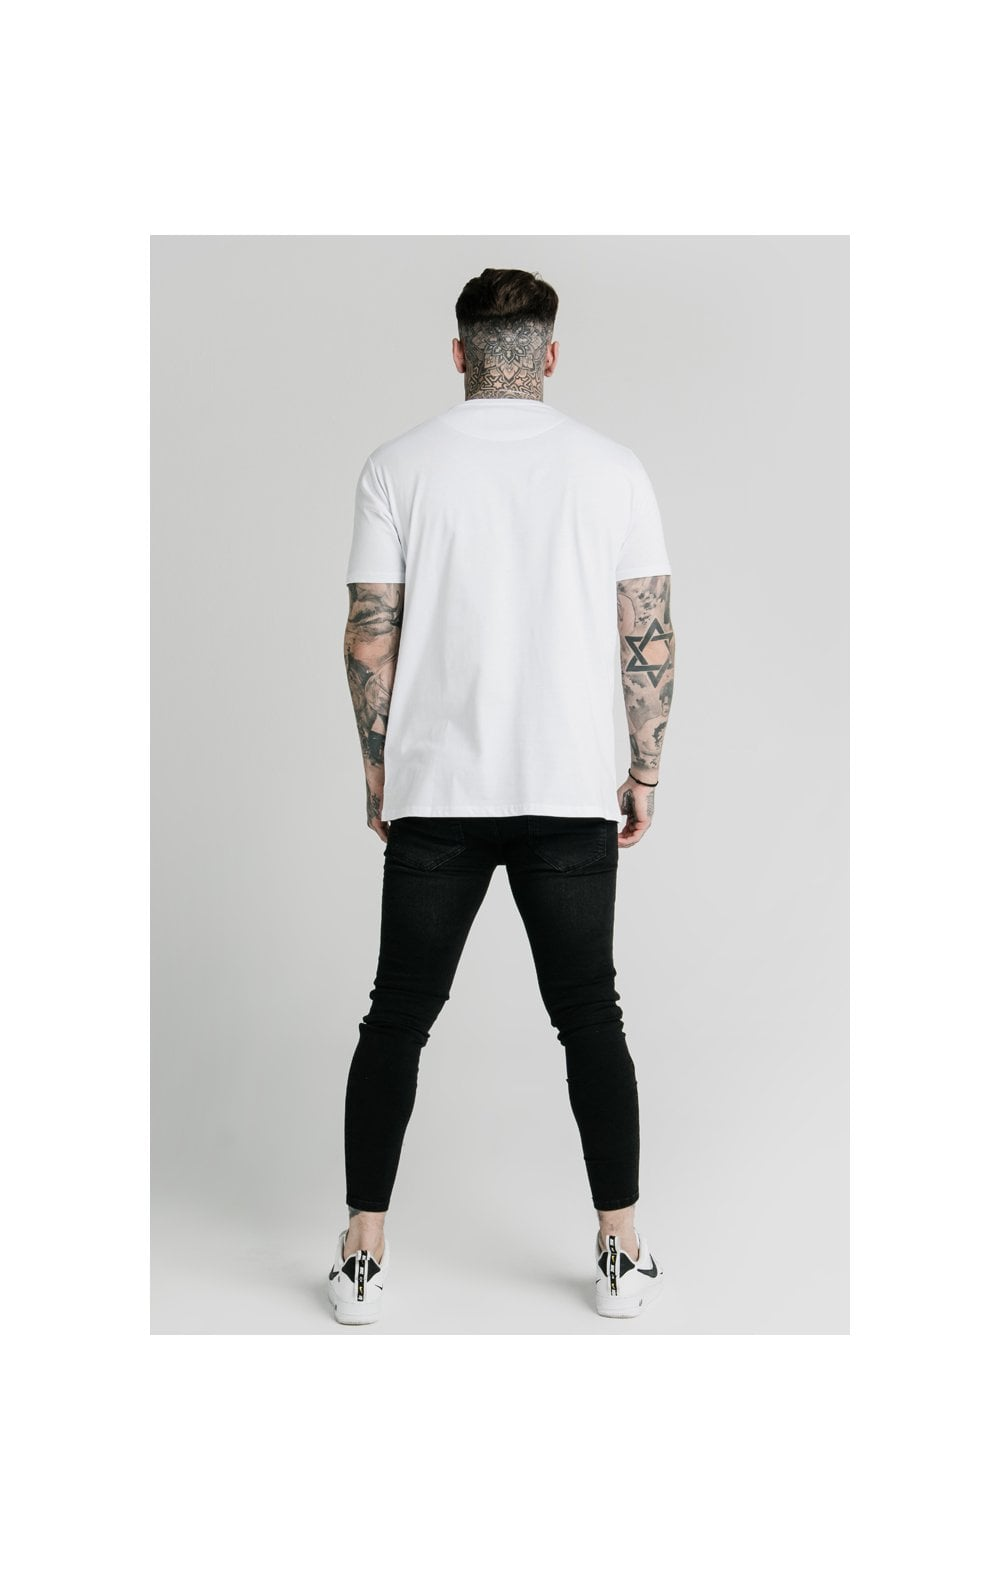 Load image into Gallery viewer, SikSilk x FaZe Apex Standard Square Hem Tee - White (6)